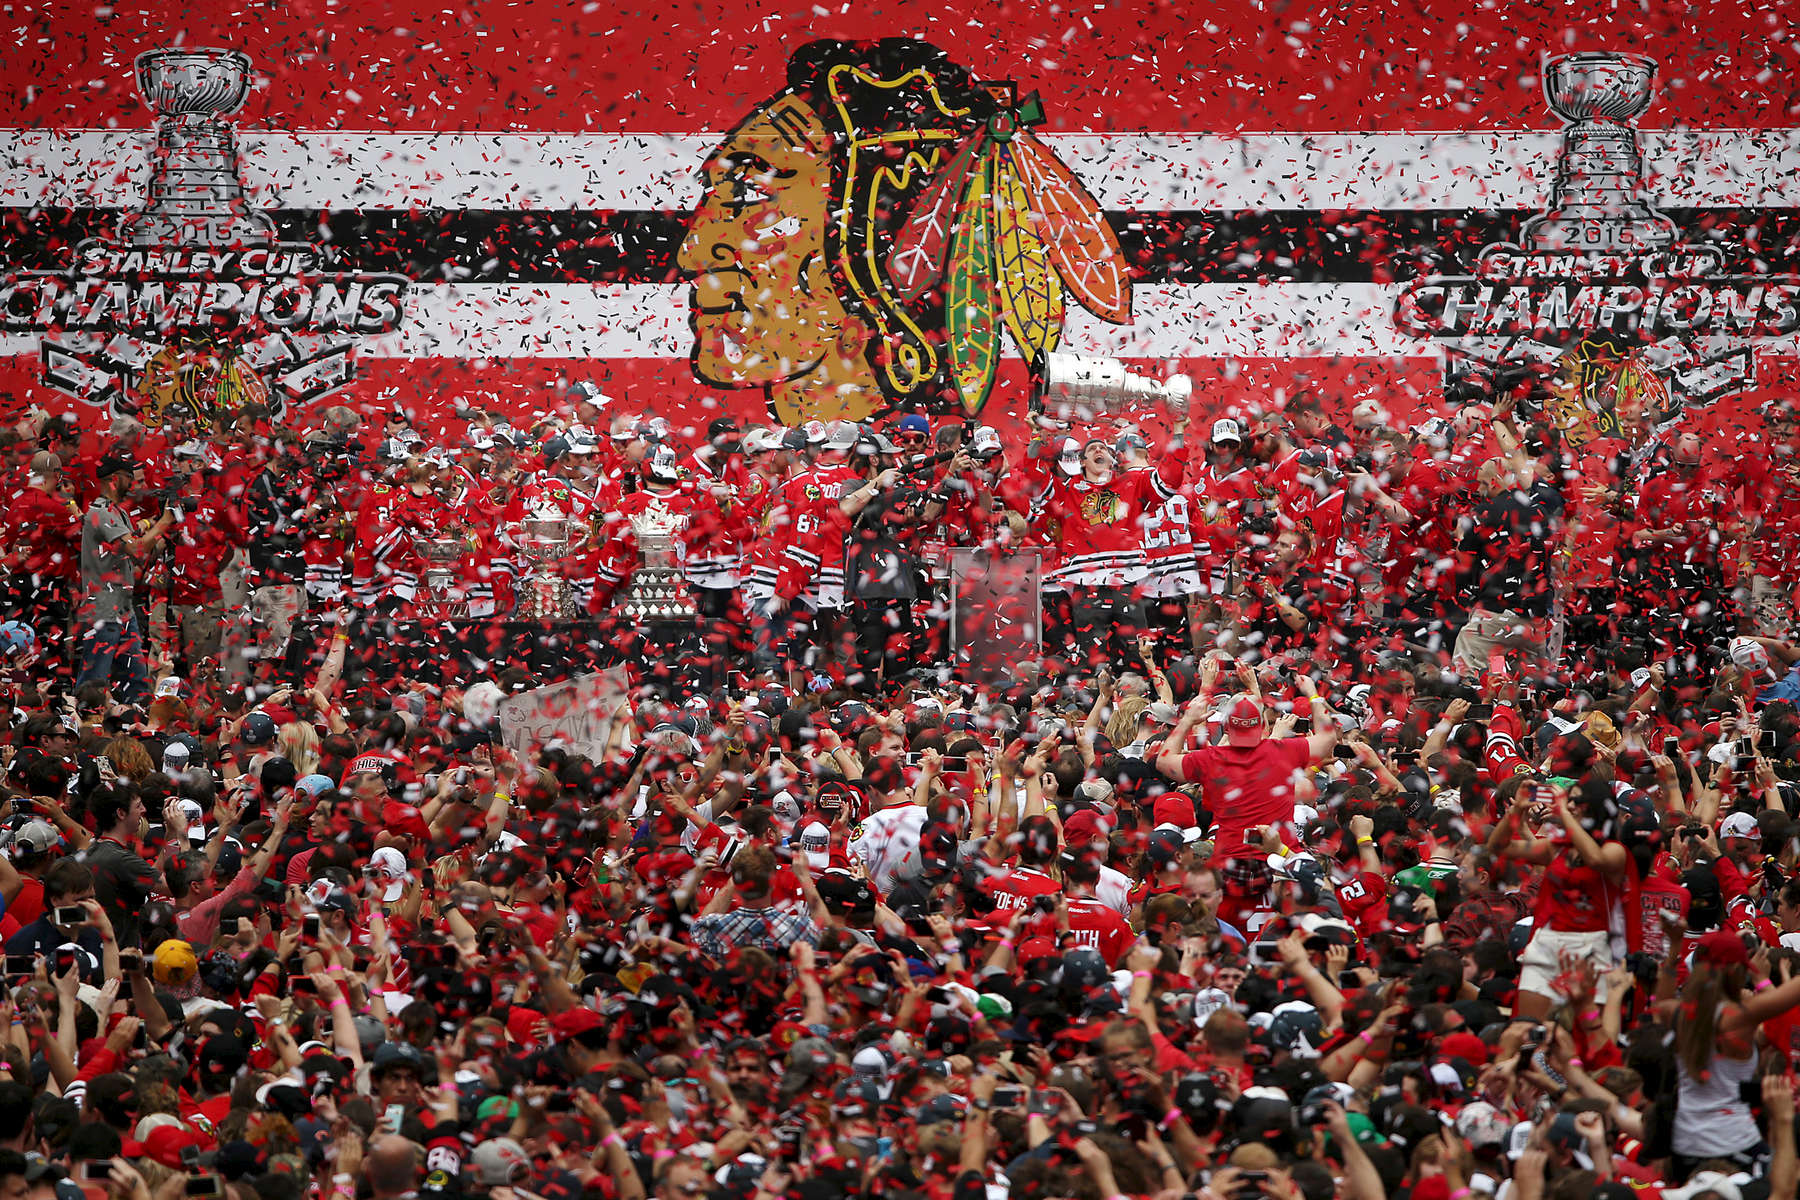 Chicago Blackhawks celebrate with the Stanley Cup trophy as confetti rains down on the crowd of fans during the Blackhawks rally at Soldier Field in Chicago.